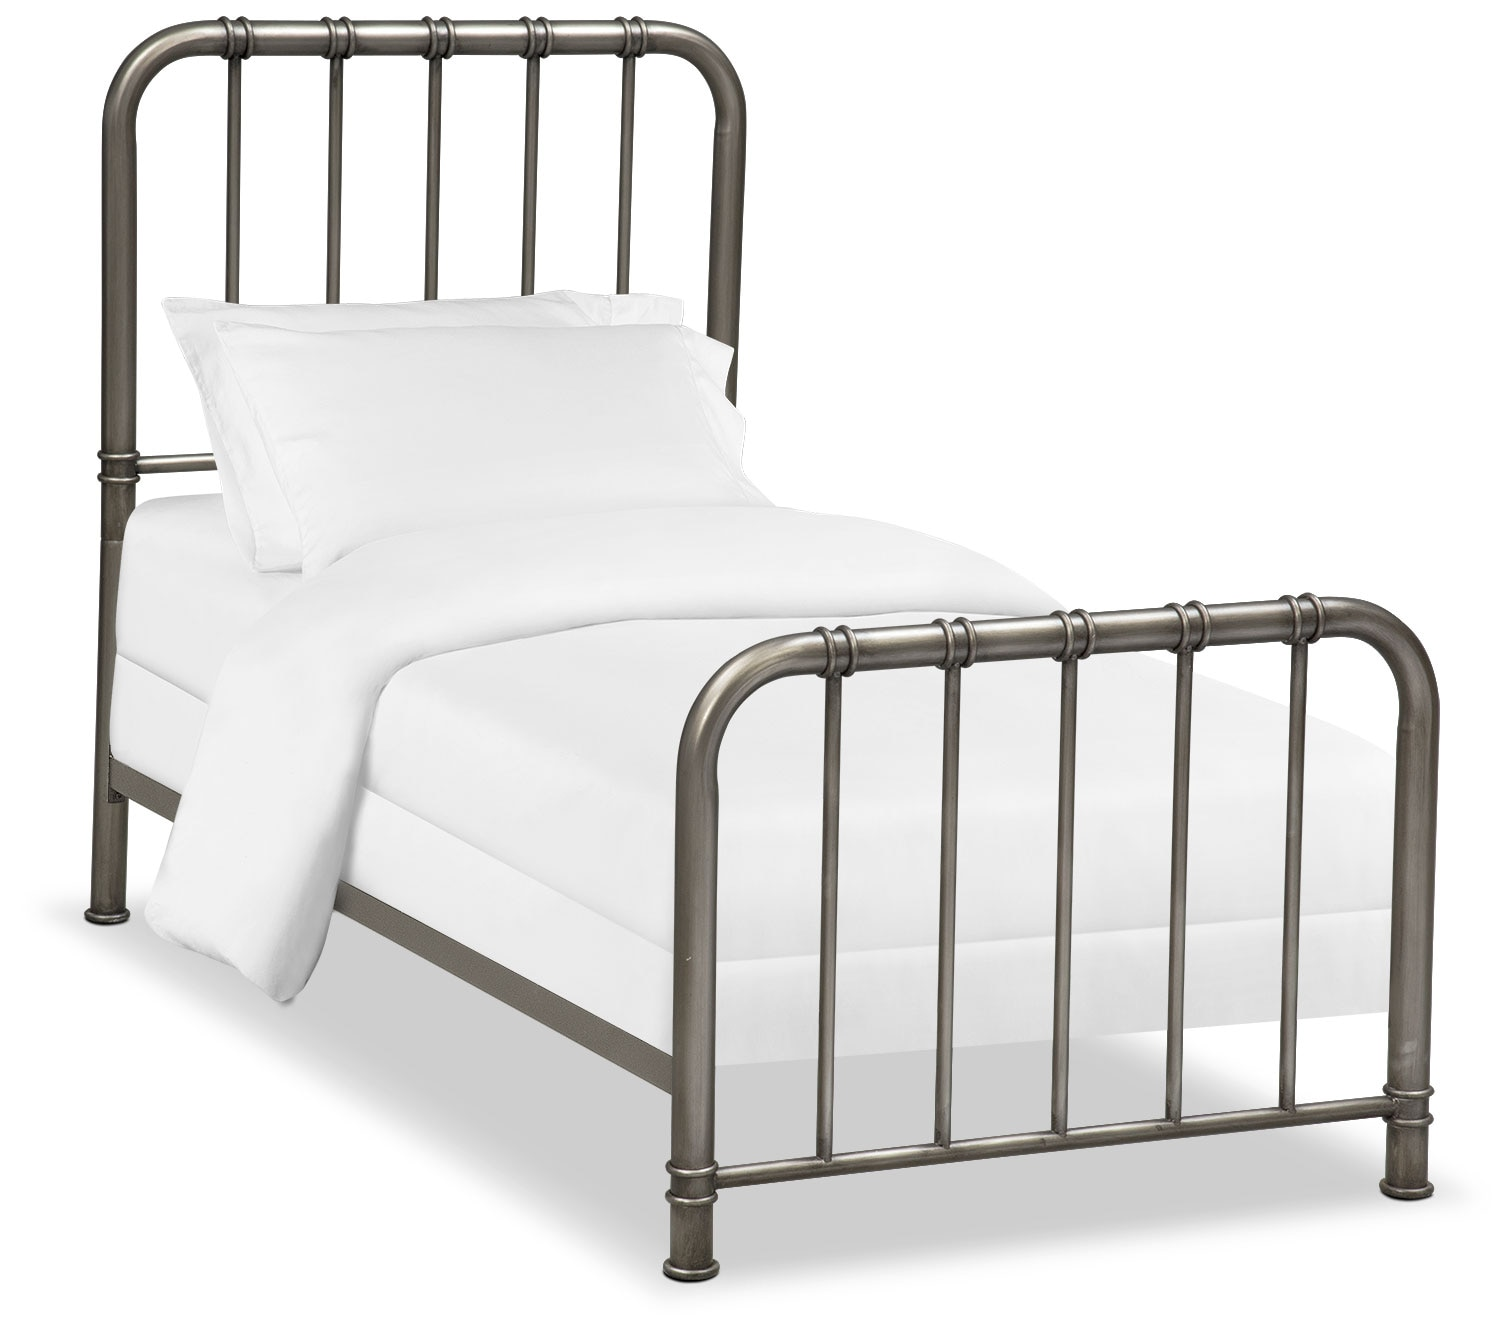 Pendleton Youth Full Bed - Gunmetal